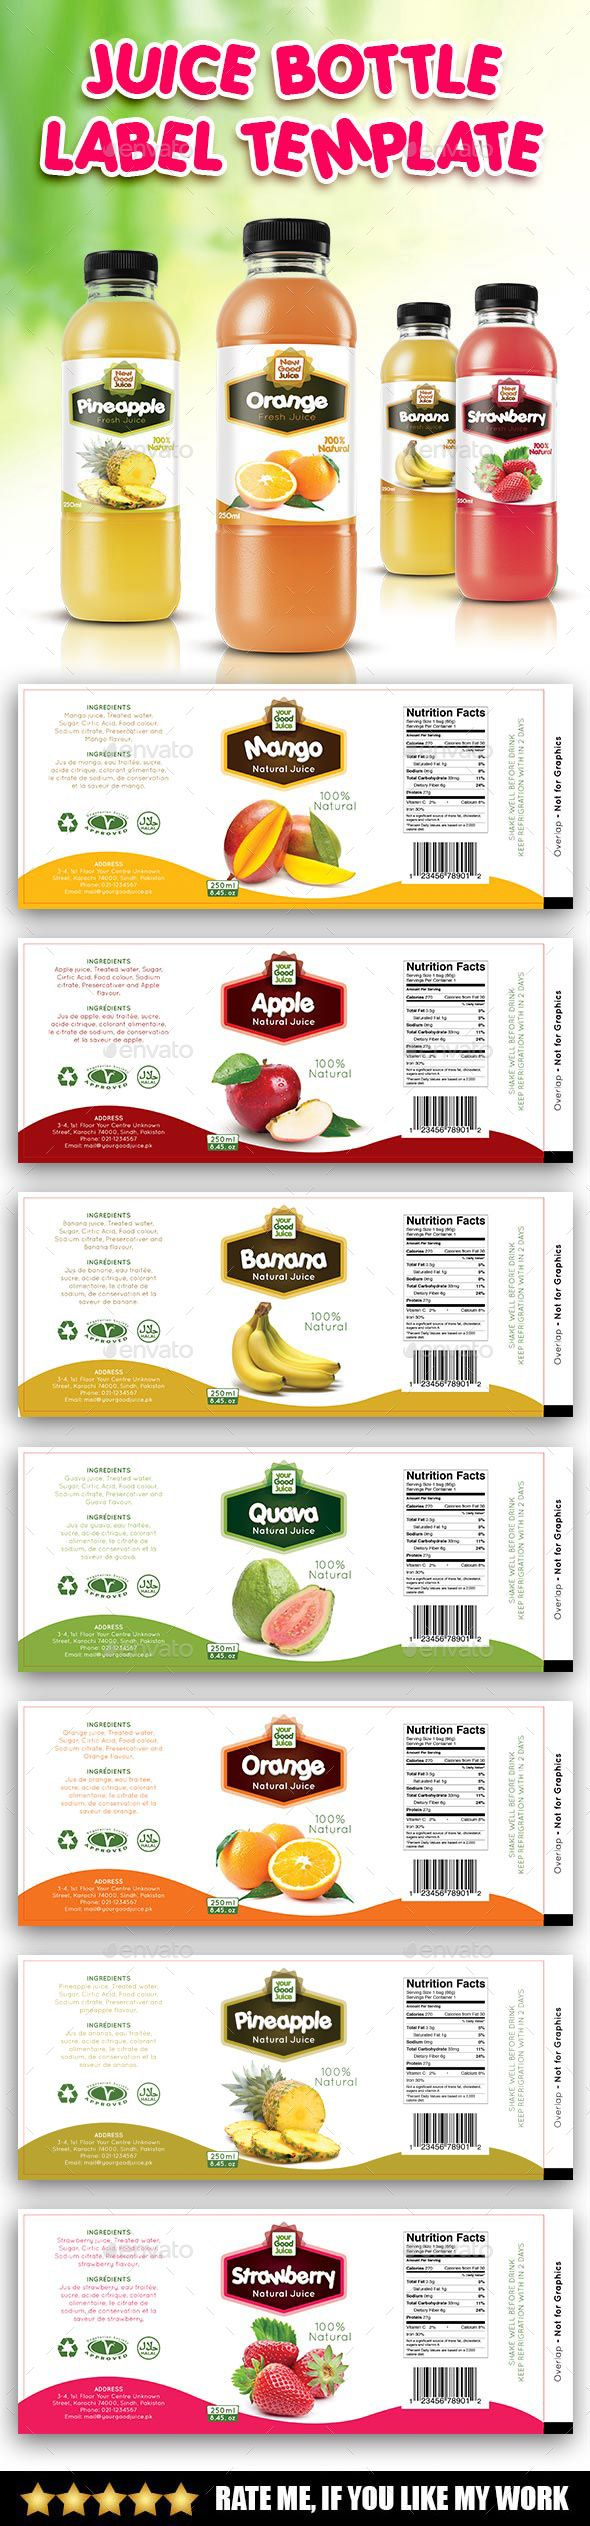 Juice Bottle Label Template  Label Templates Juice Bottles And Juice